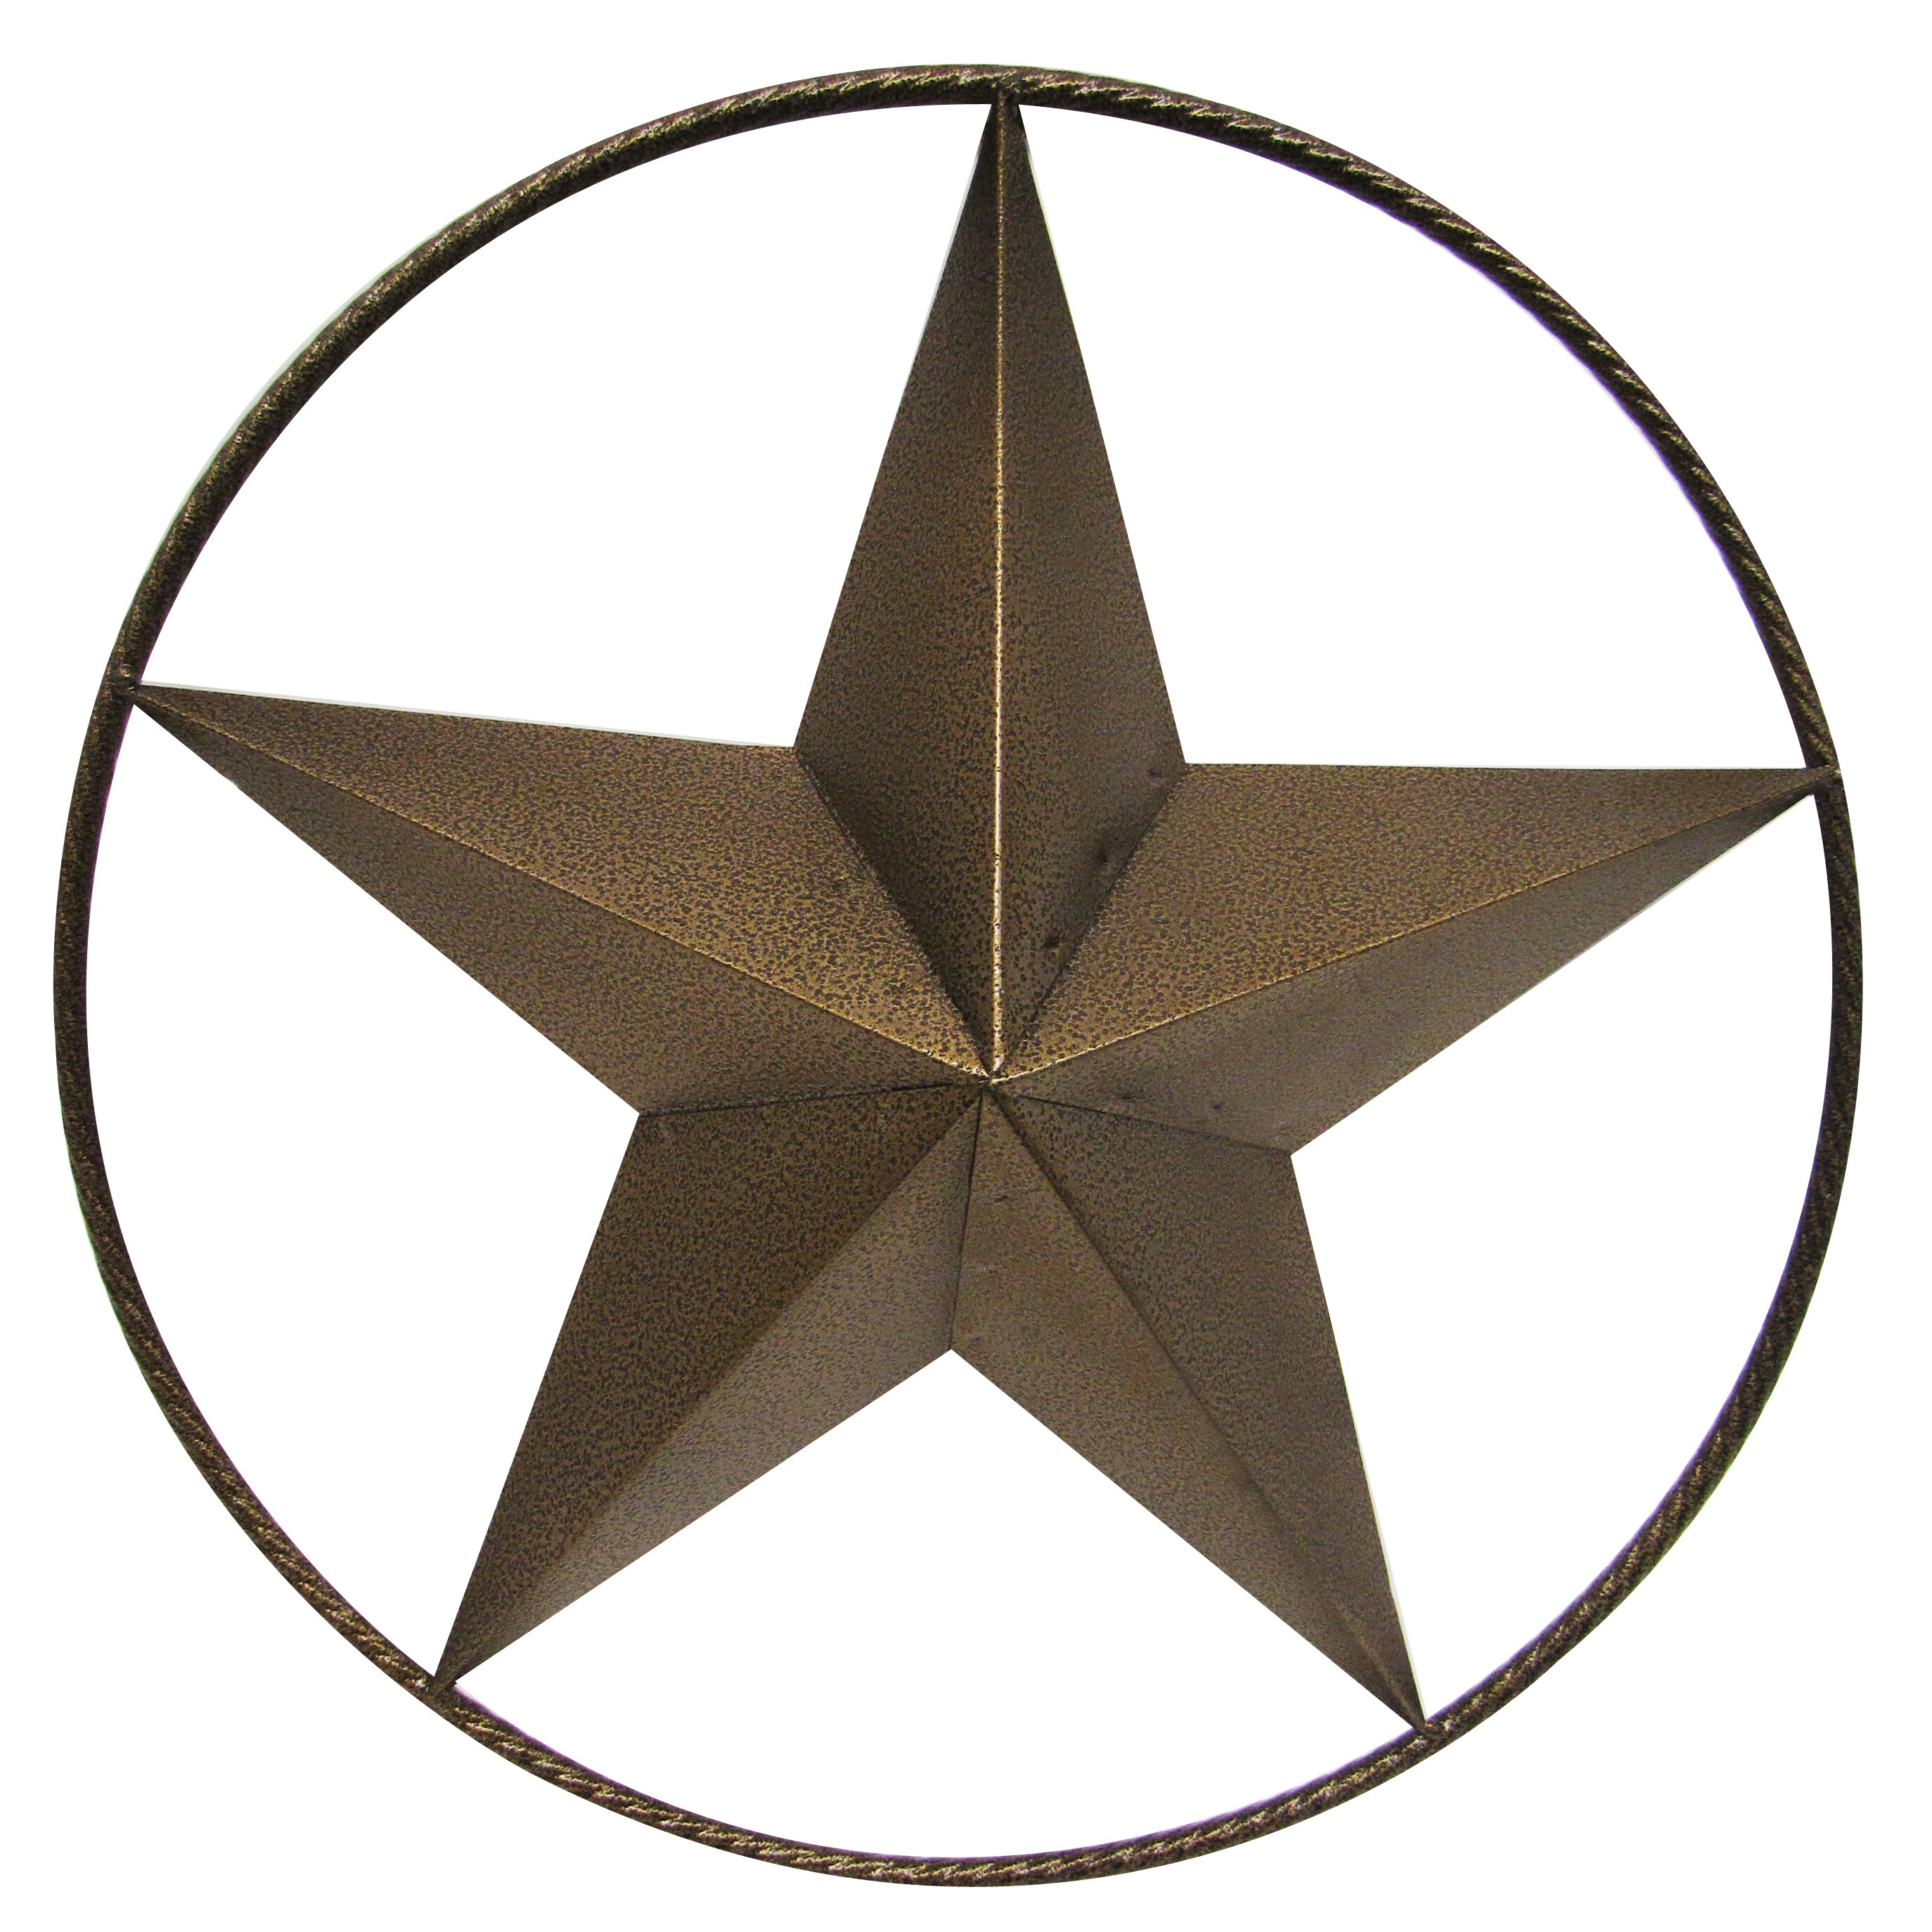 Glass Star Wall Decor : Leighcountry hollow ringed star wall d?cor reviews